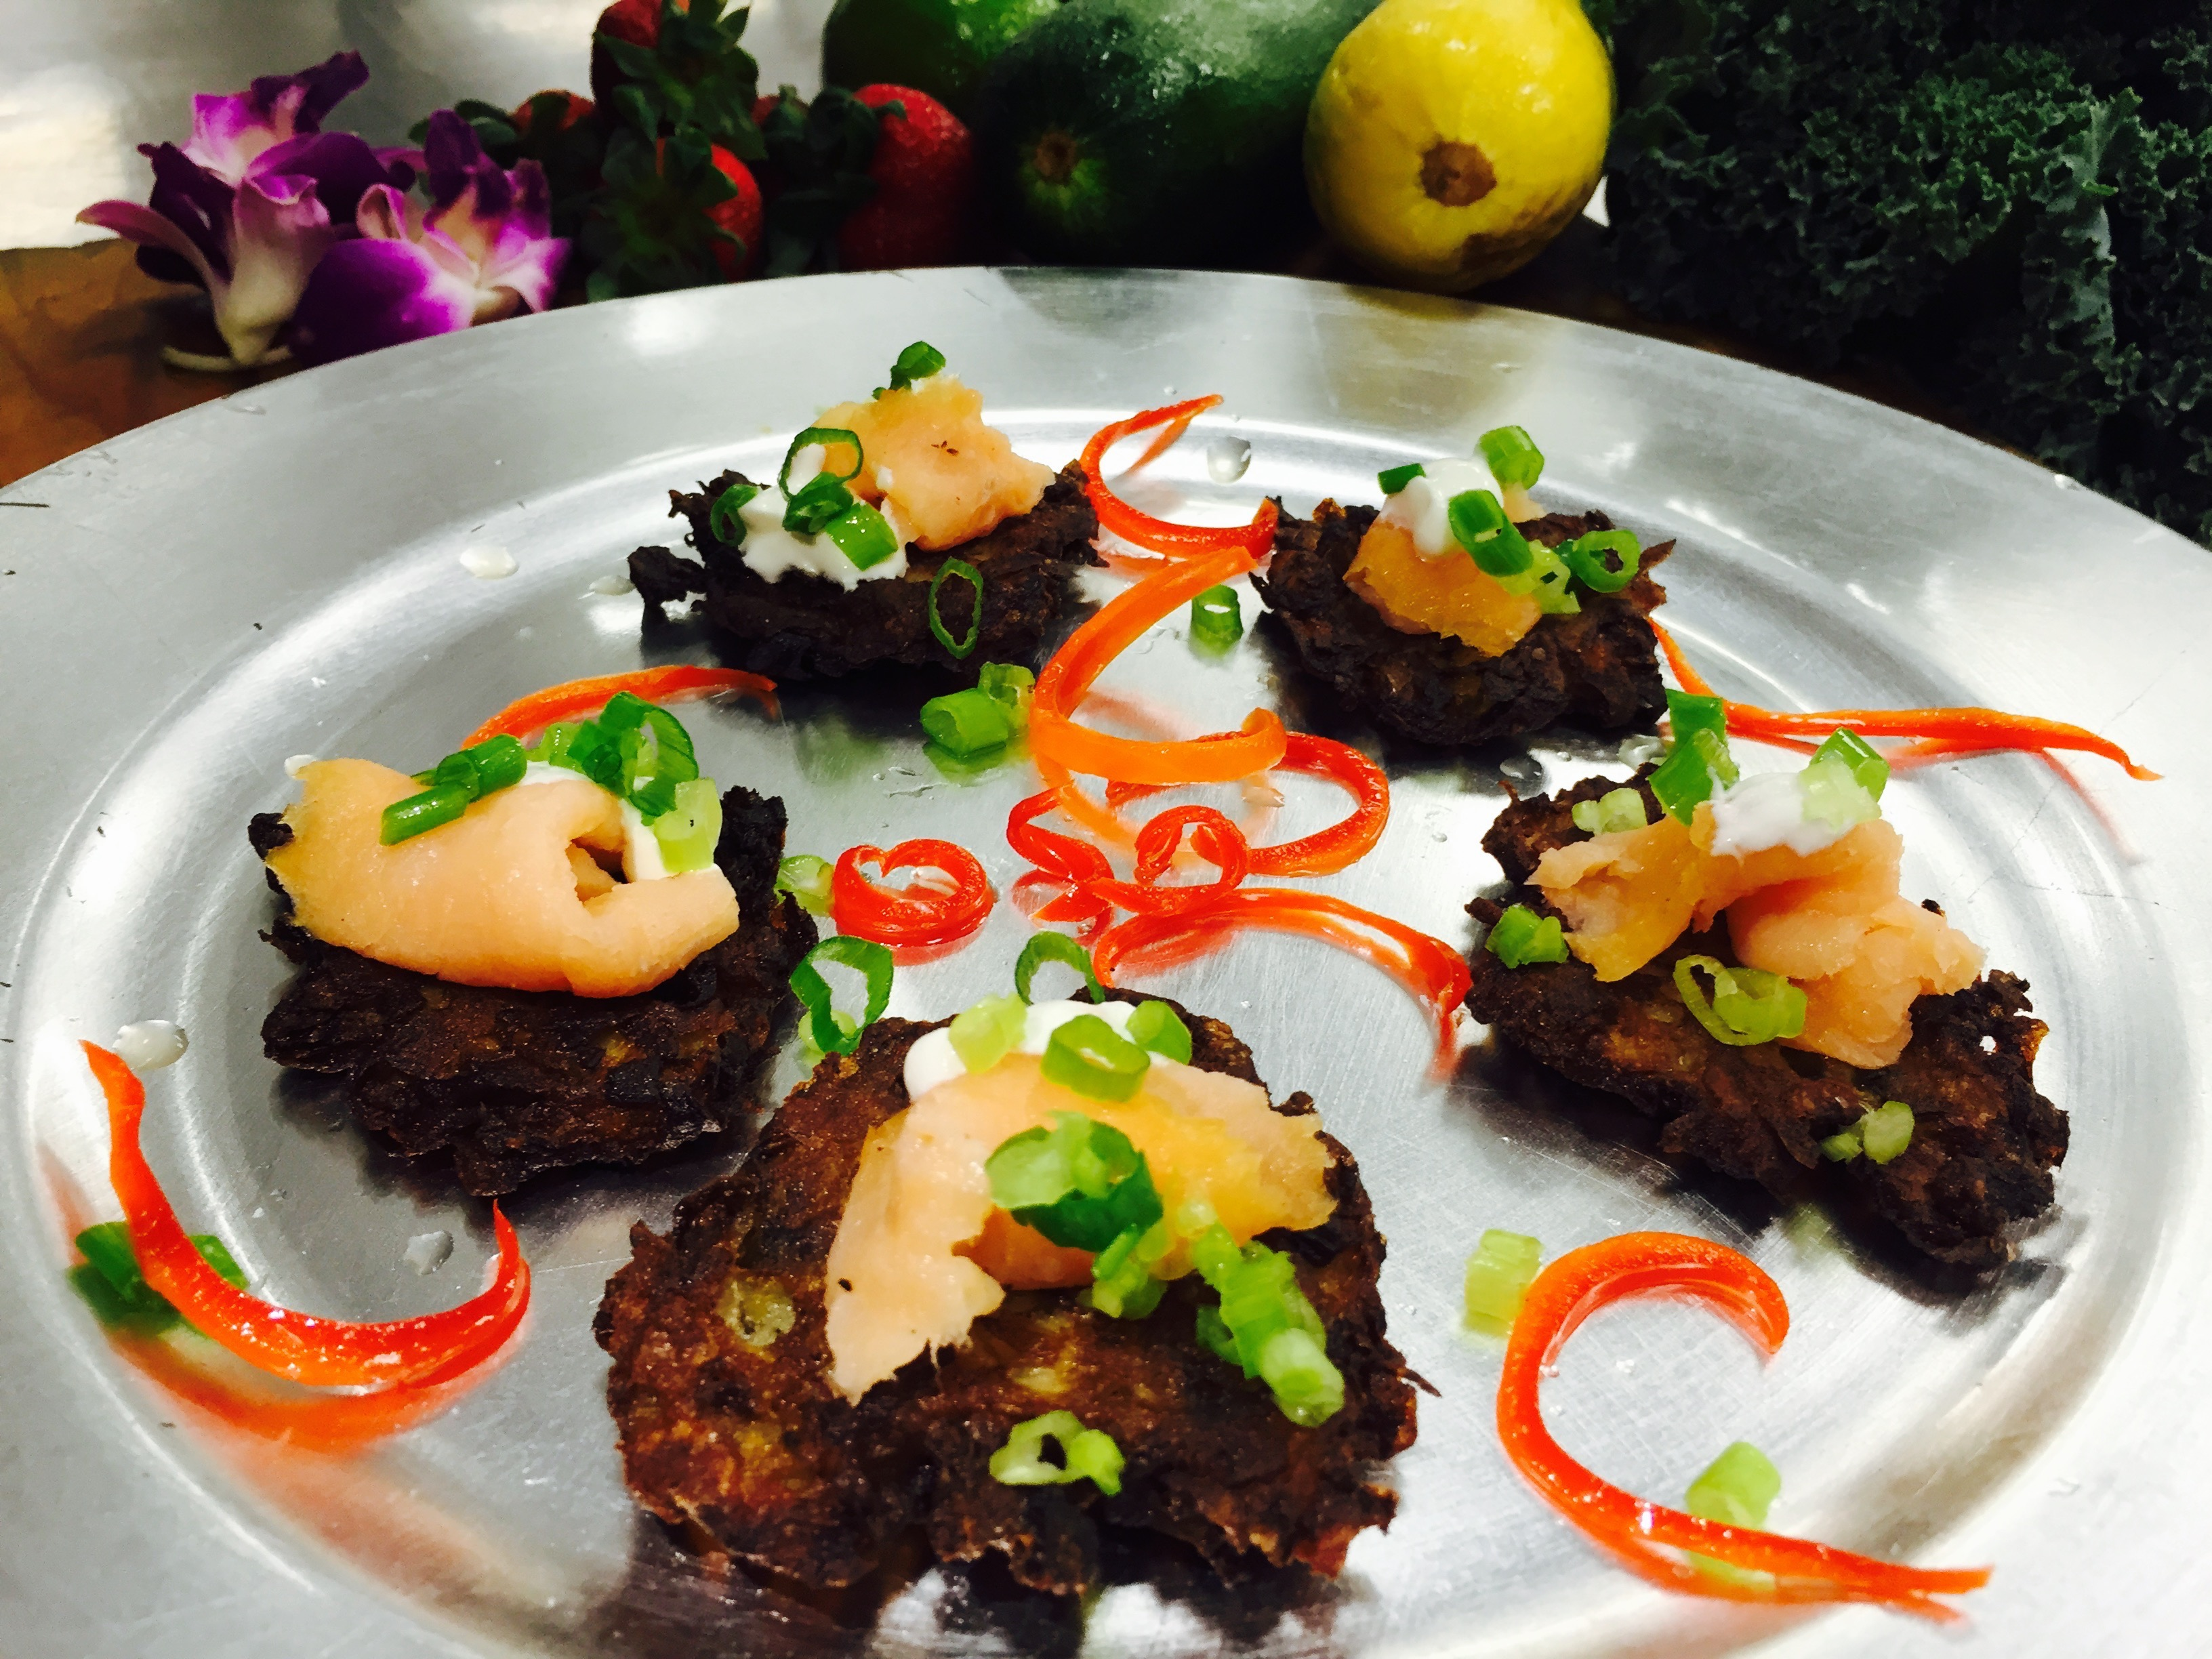 Potato Pancakes Served with Sour Cream and Chives or Applesauce